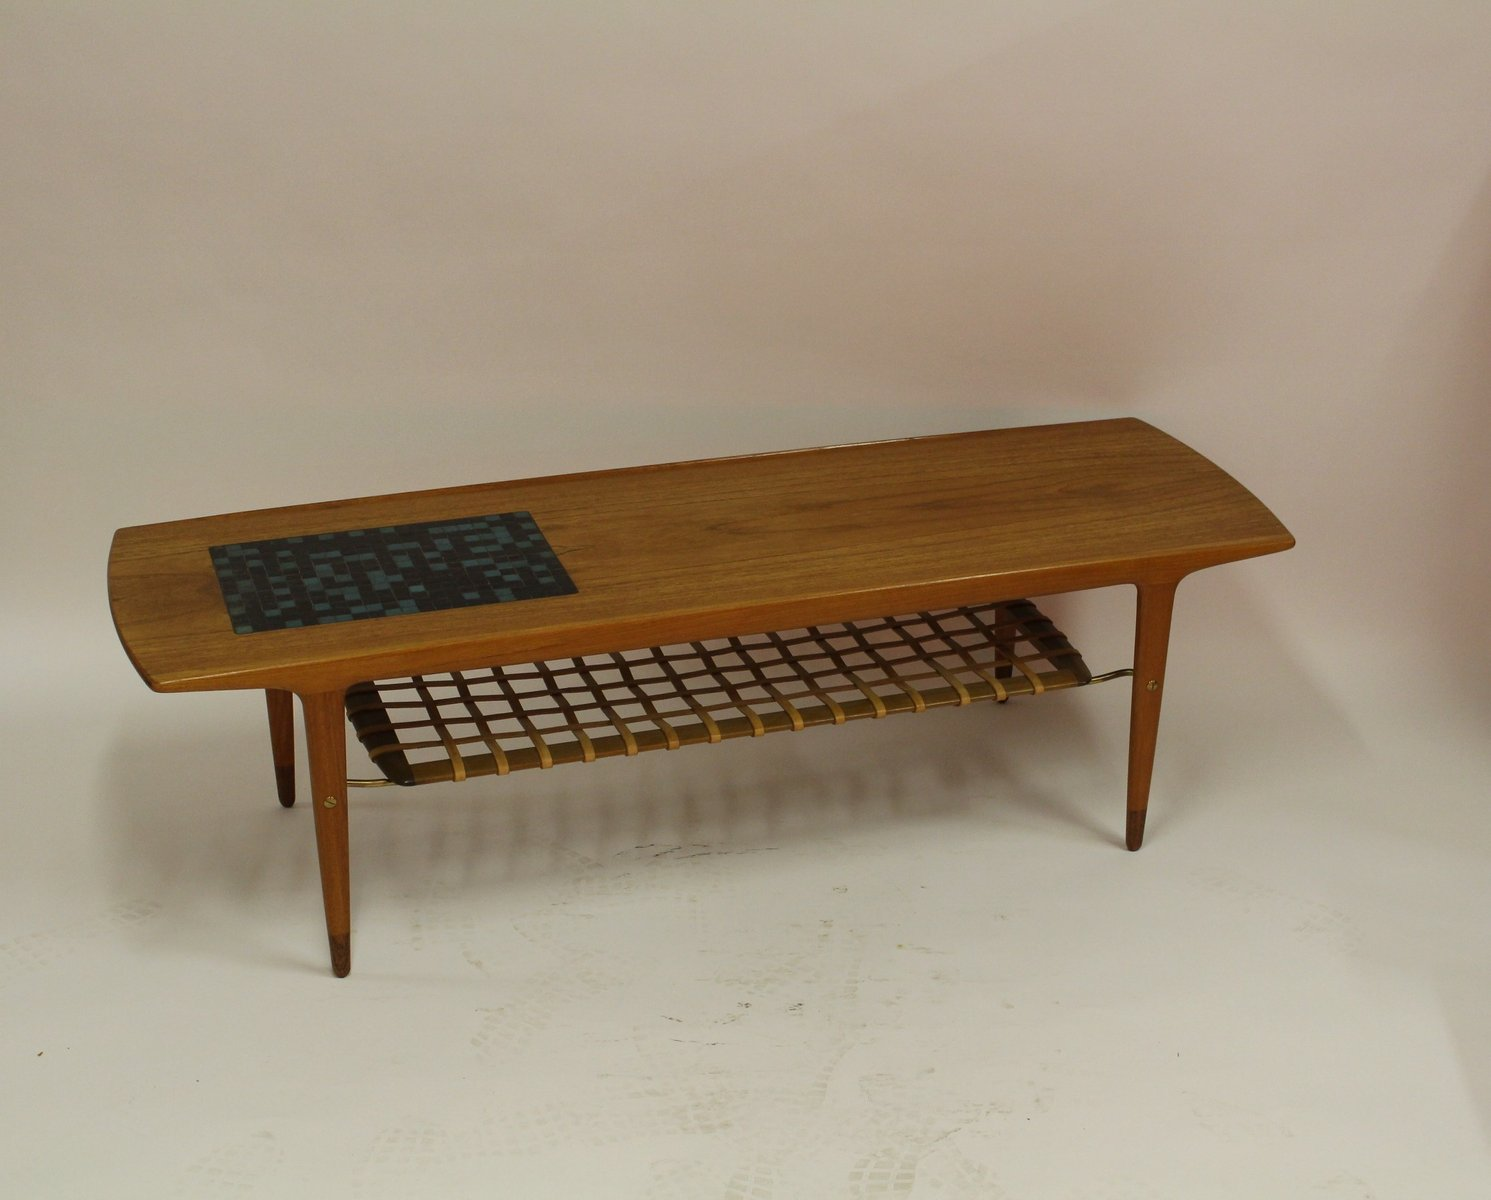 Vintage Danish Teak Coffee Table With Ceramic Tiles And Leather Magazine Rack For Sale At Pamono